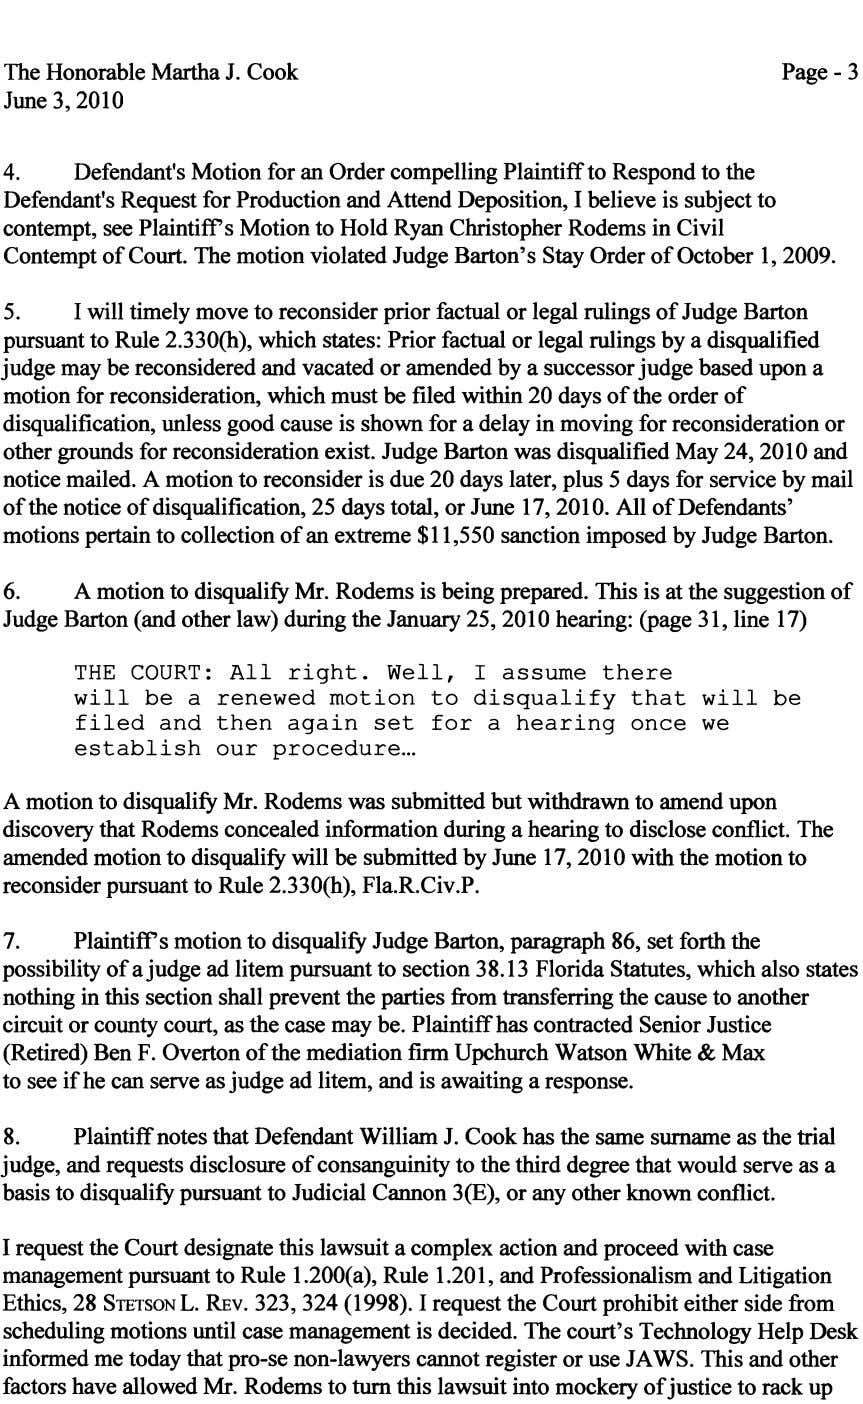 The Honorable Martha J. Cook June 3, 2010 Page - 3 4. Defendant's Motion for